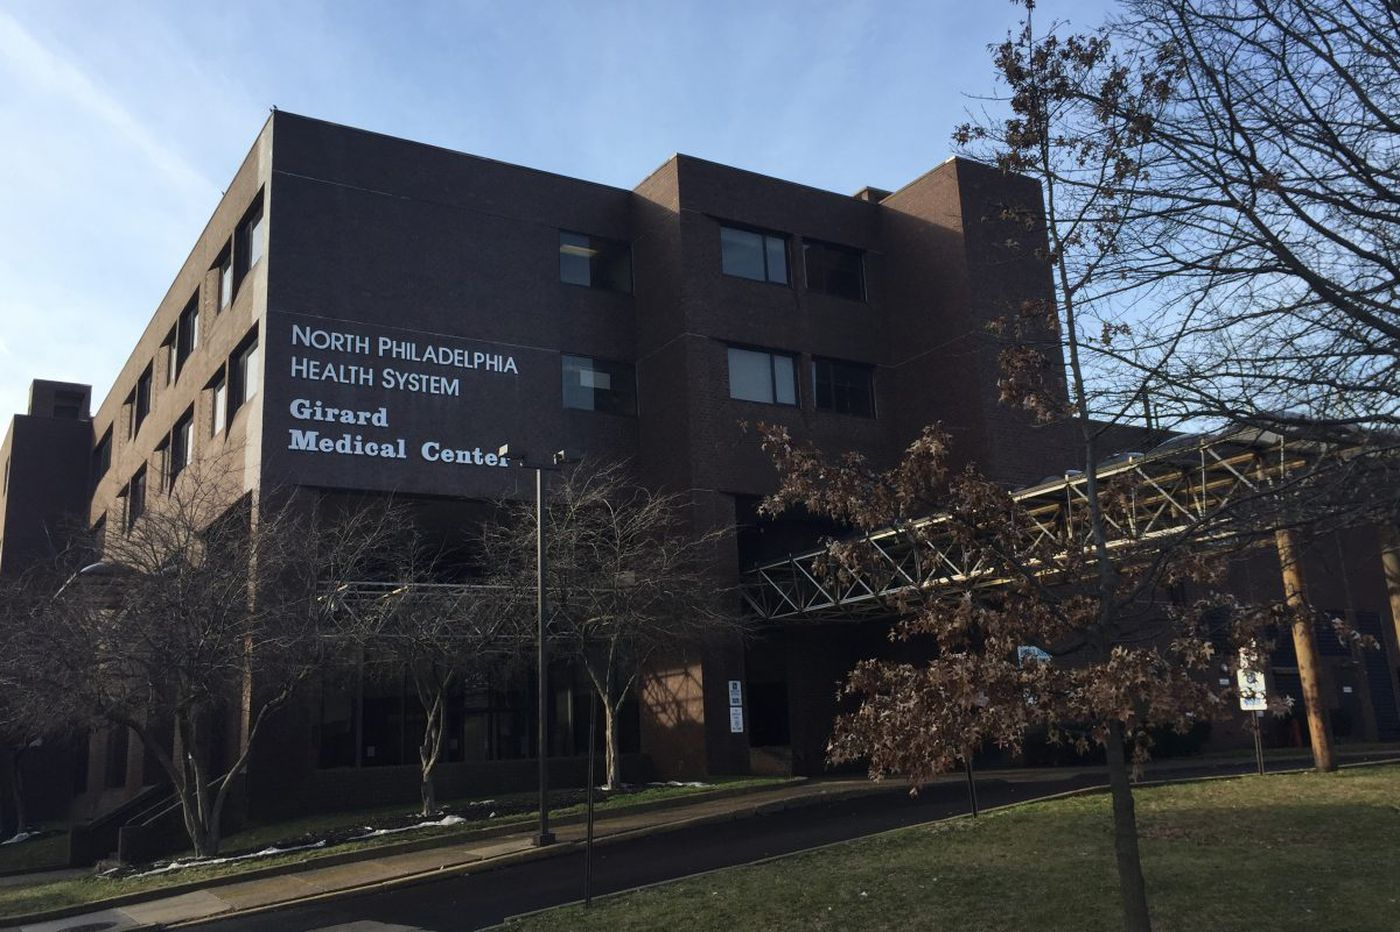 Bankrupt North Philadelphia Health System could continue running Girard Medical Center